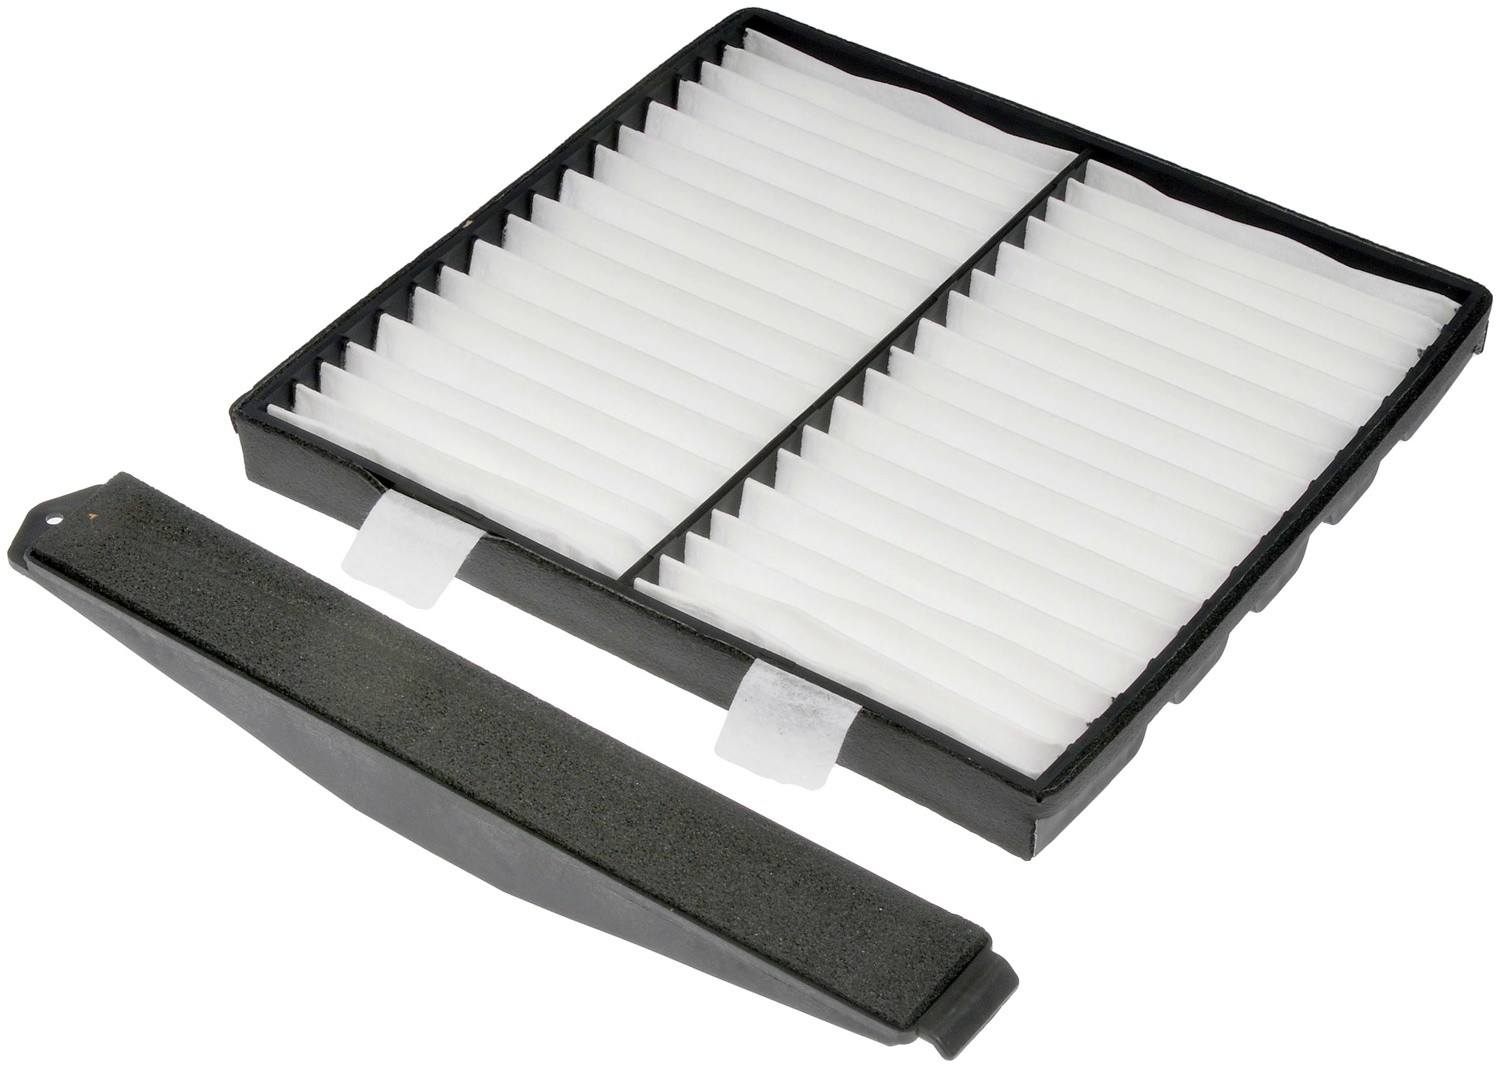 DORMAN OE SOLUTIONS - Cabin Air Filter Retrofit Kit - DRE 259-200